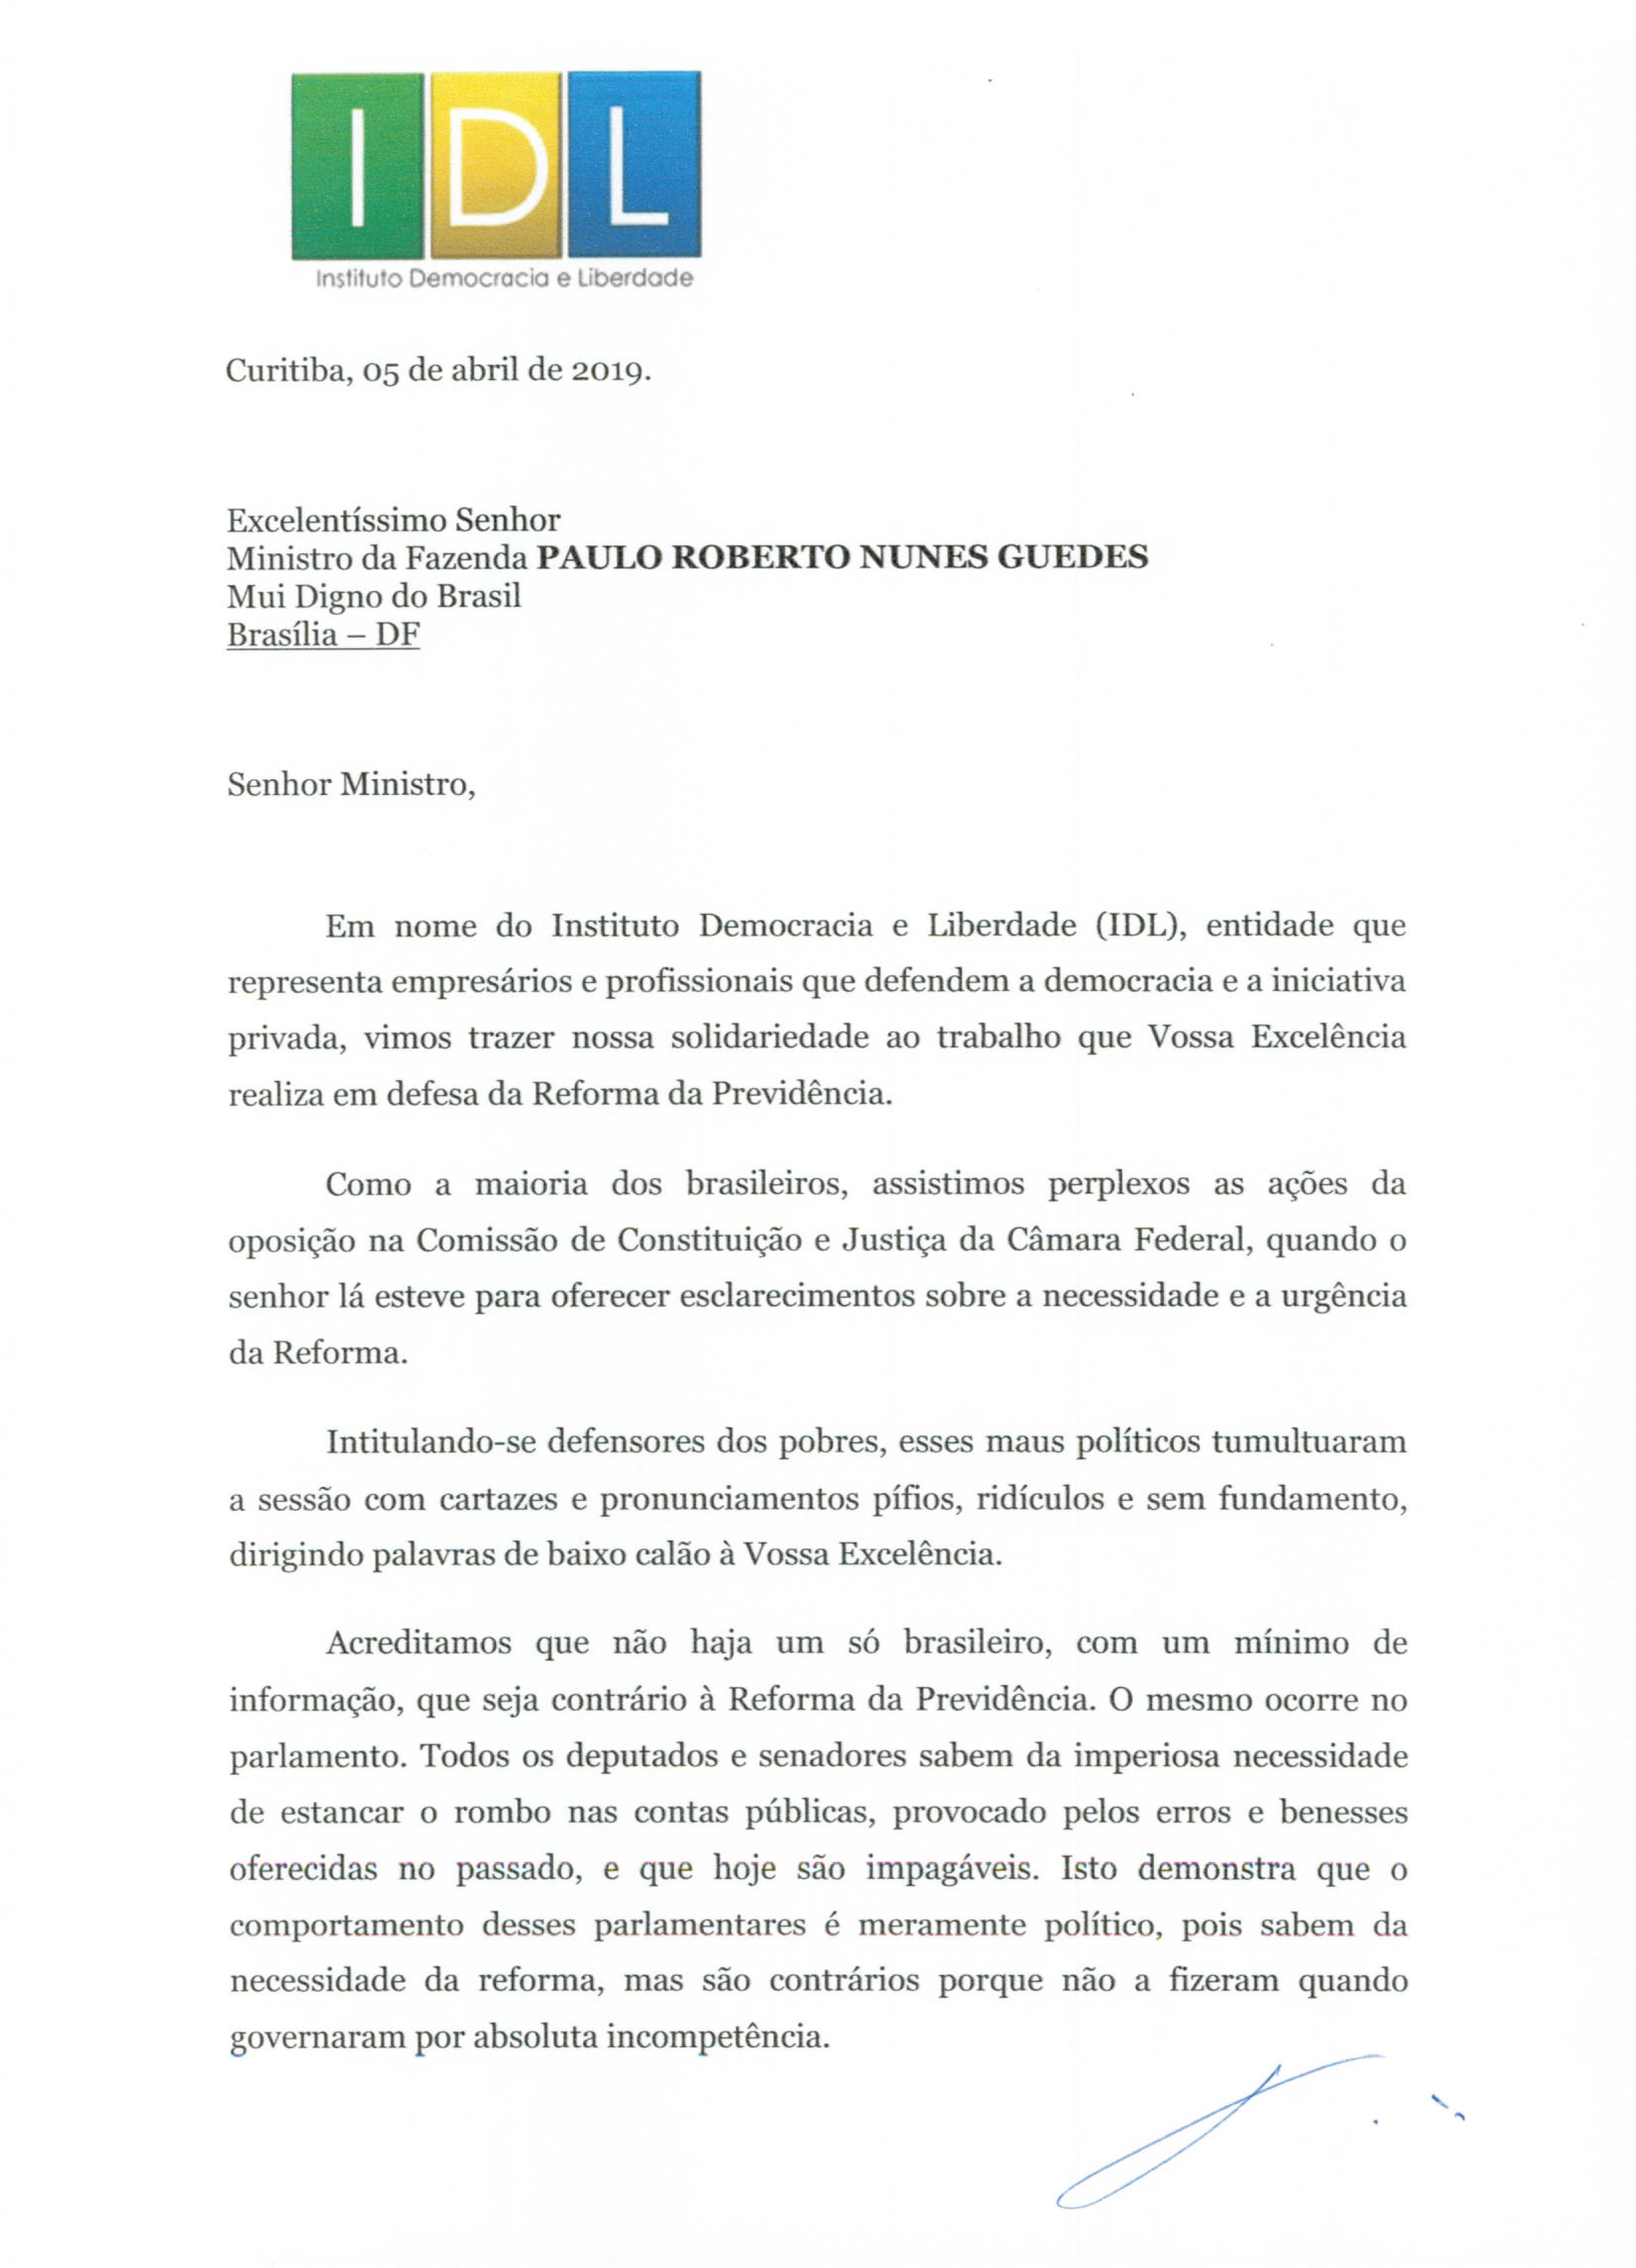 IDL - CARTA AO MINISTRO PAULO GUEDES 05_04_2019-1